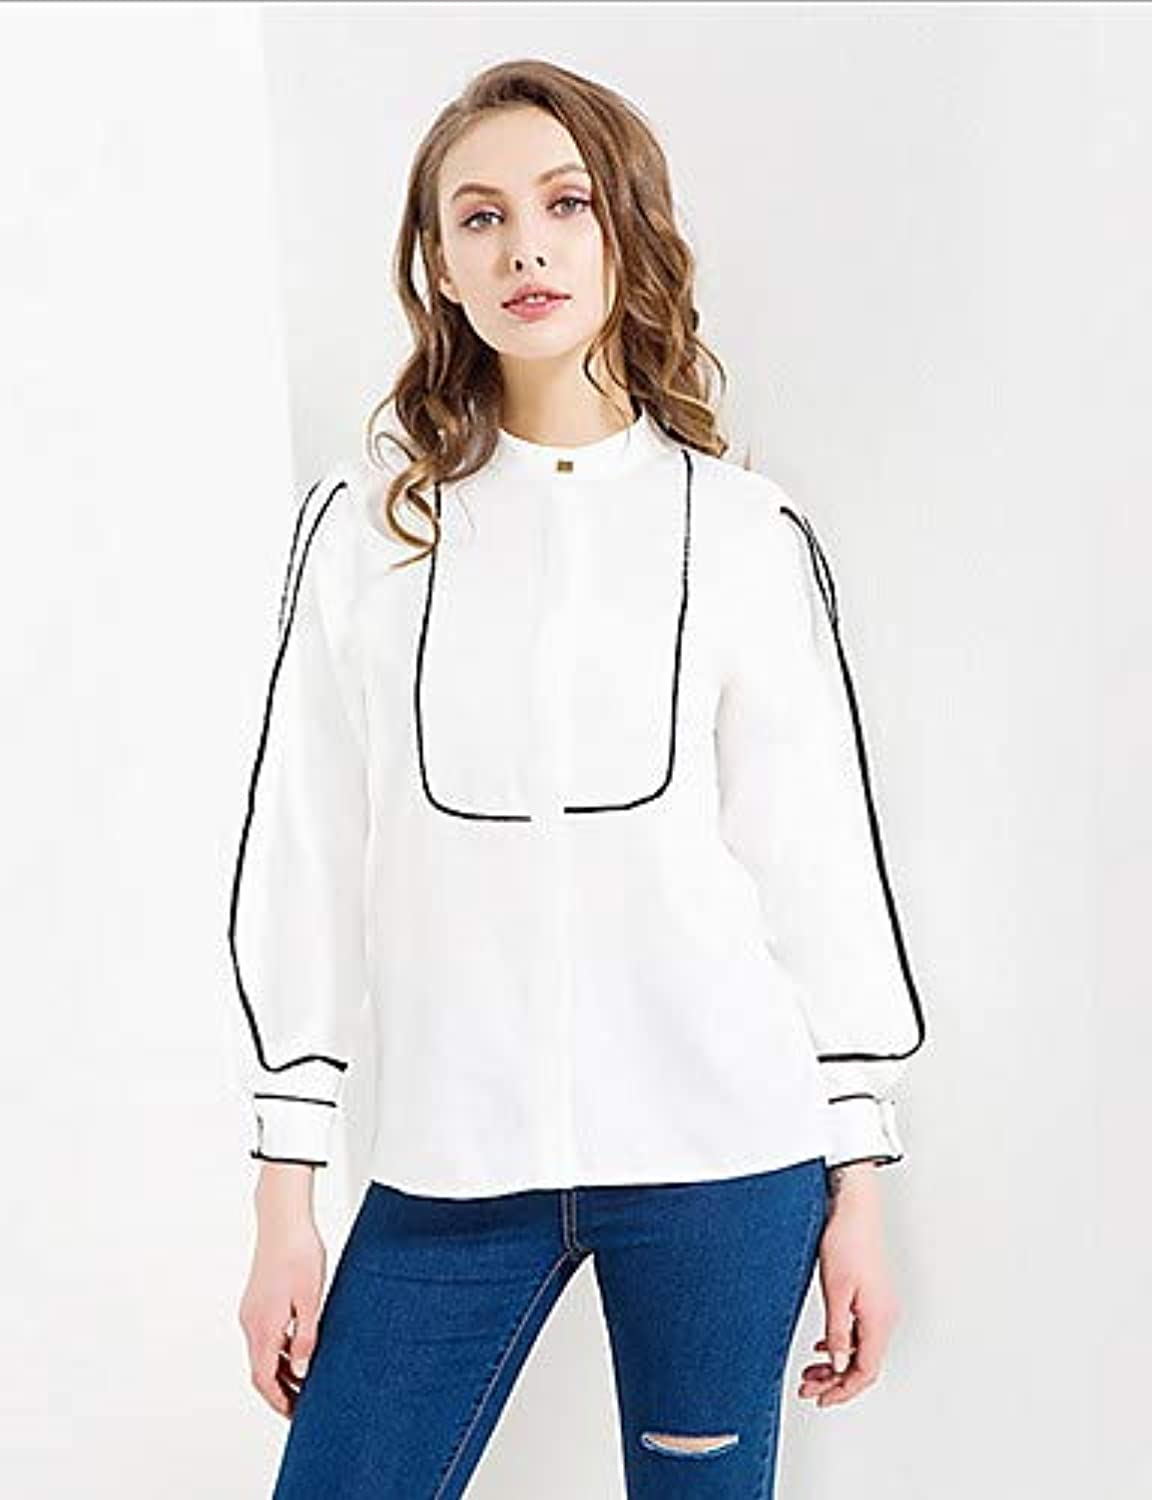 Women's Basic Shirt  Solid colord Striped